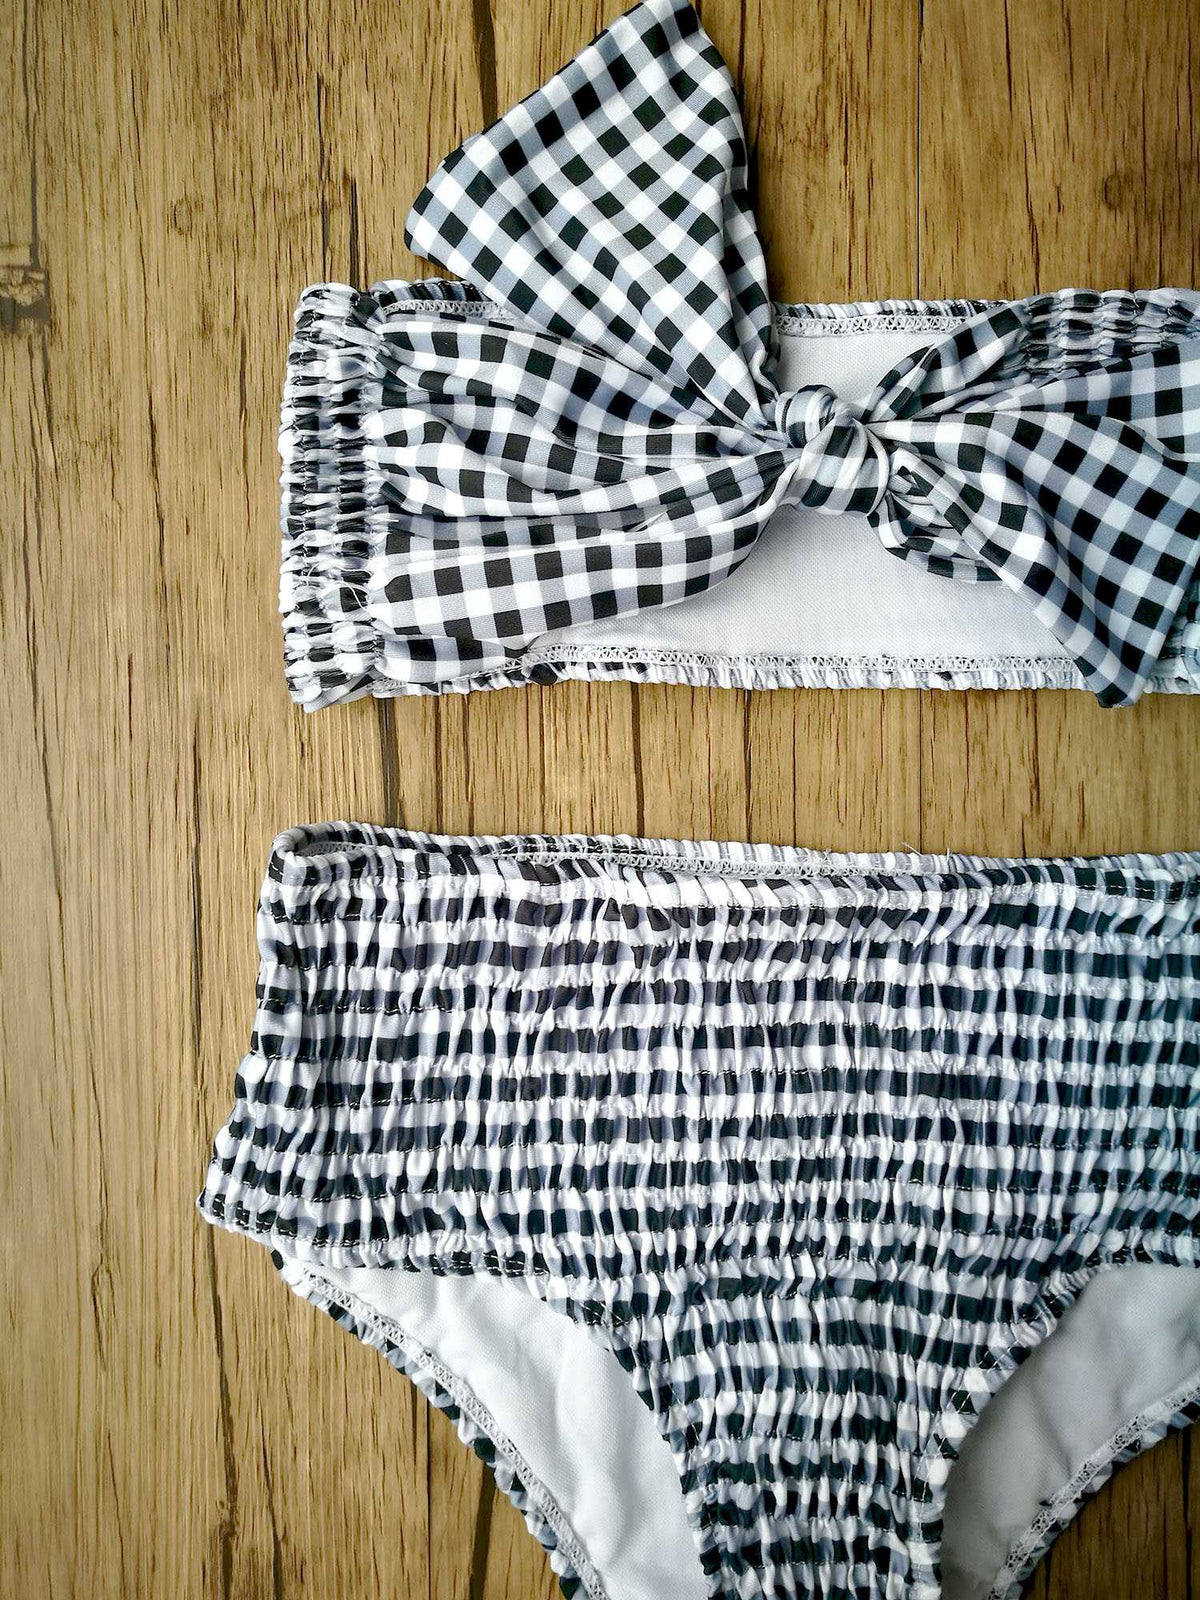 Scrunch Gingham Mega Bow High Waist Strapless Bikini Set - worthtryit.com